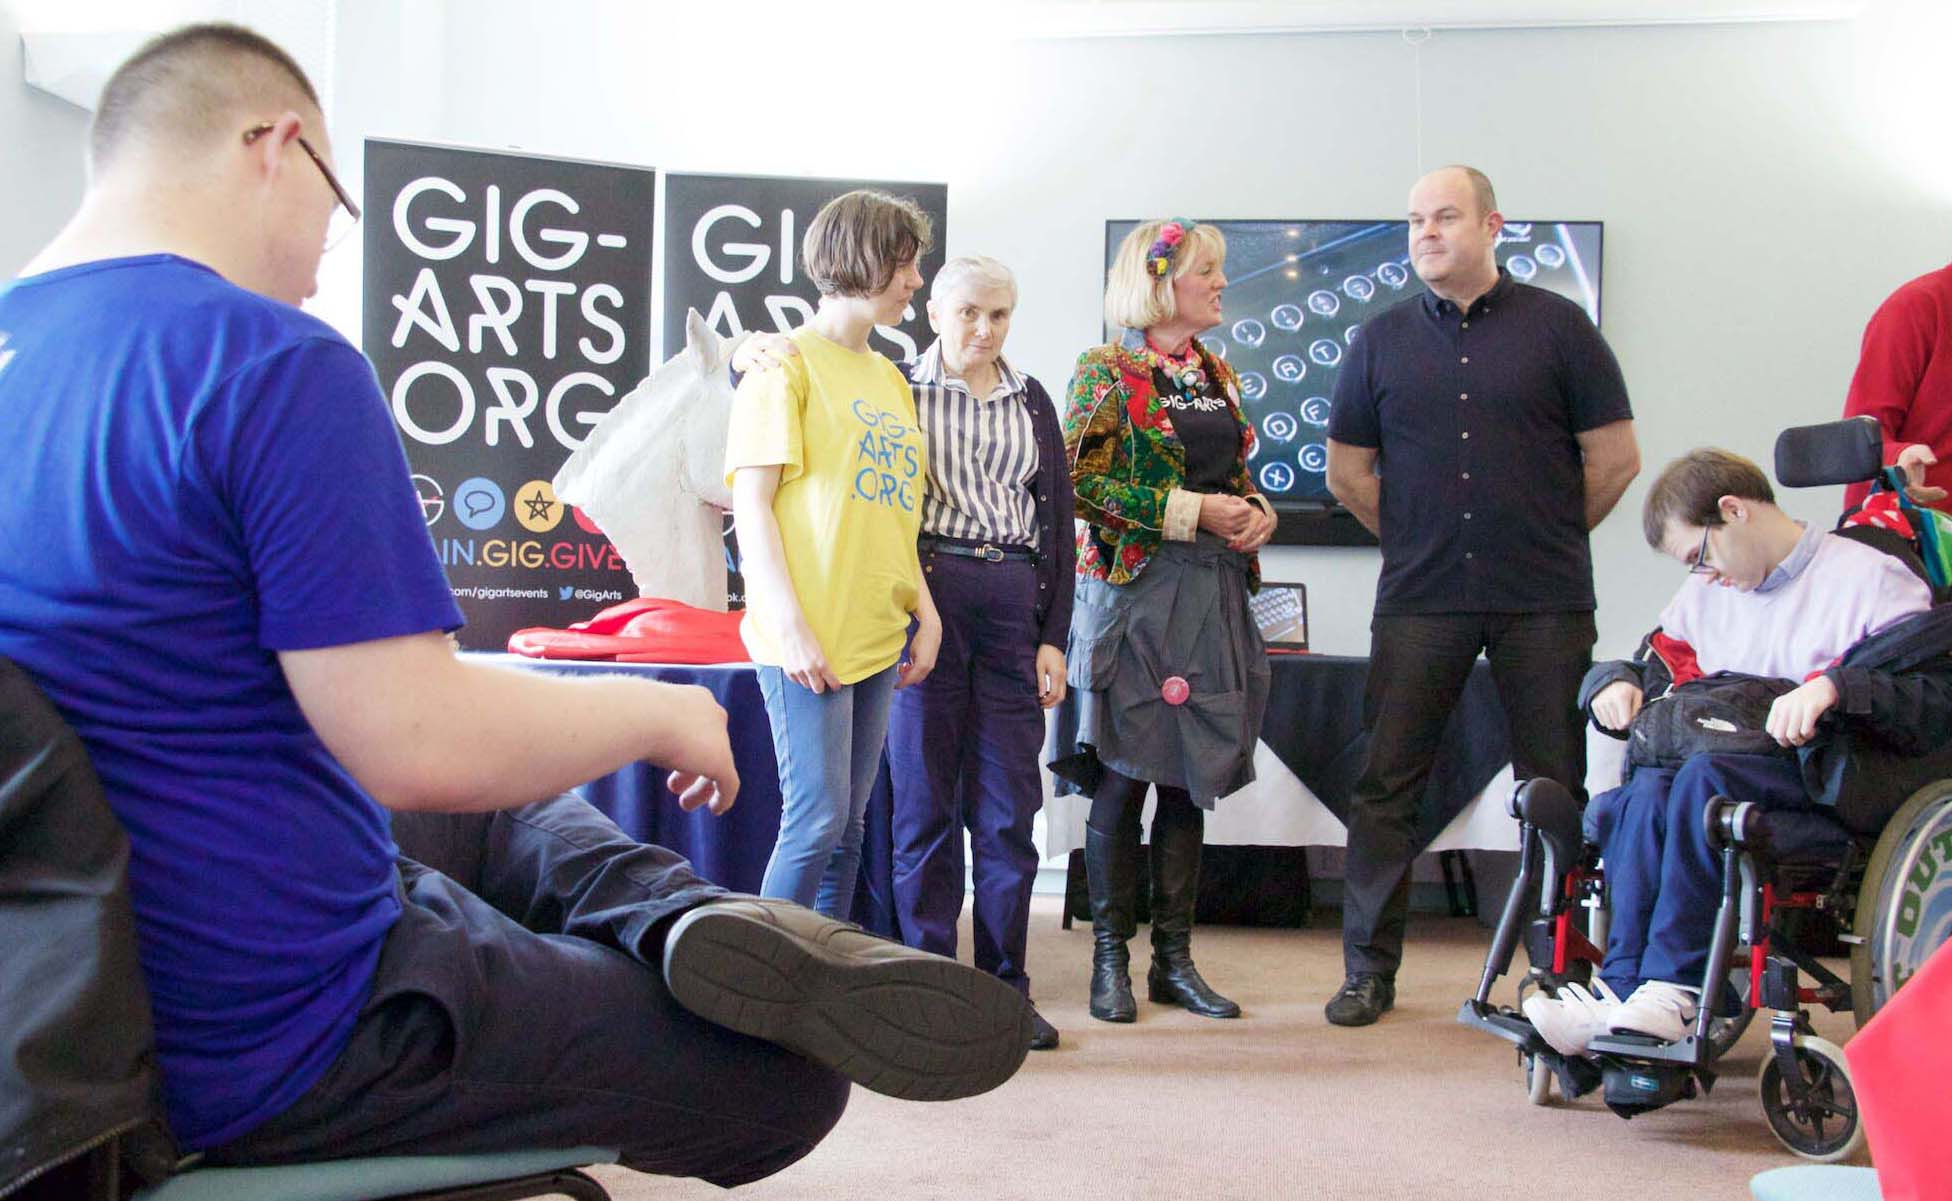 Bloxham Mill's Graham Hickman offers work experience to the Gig-Arts participants